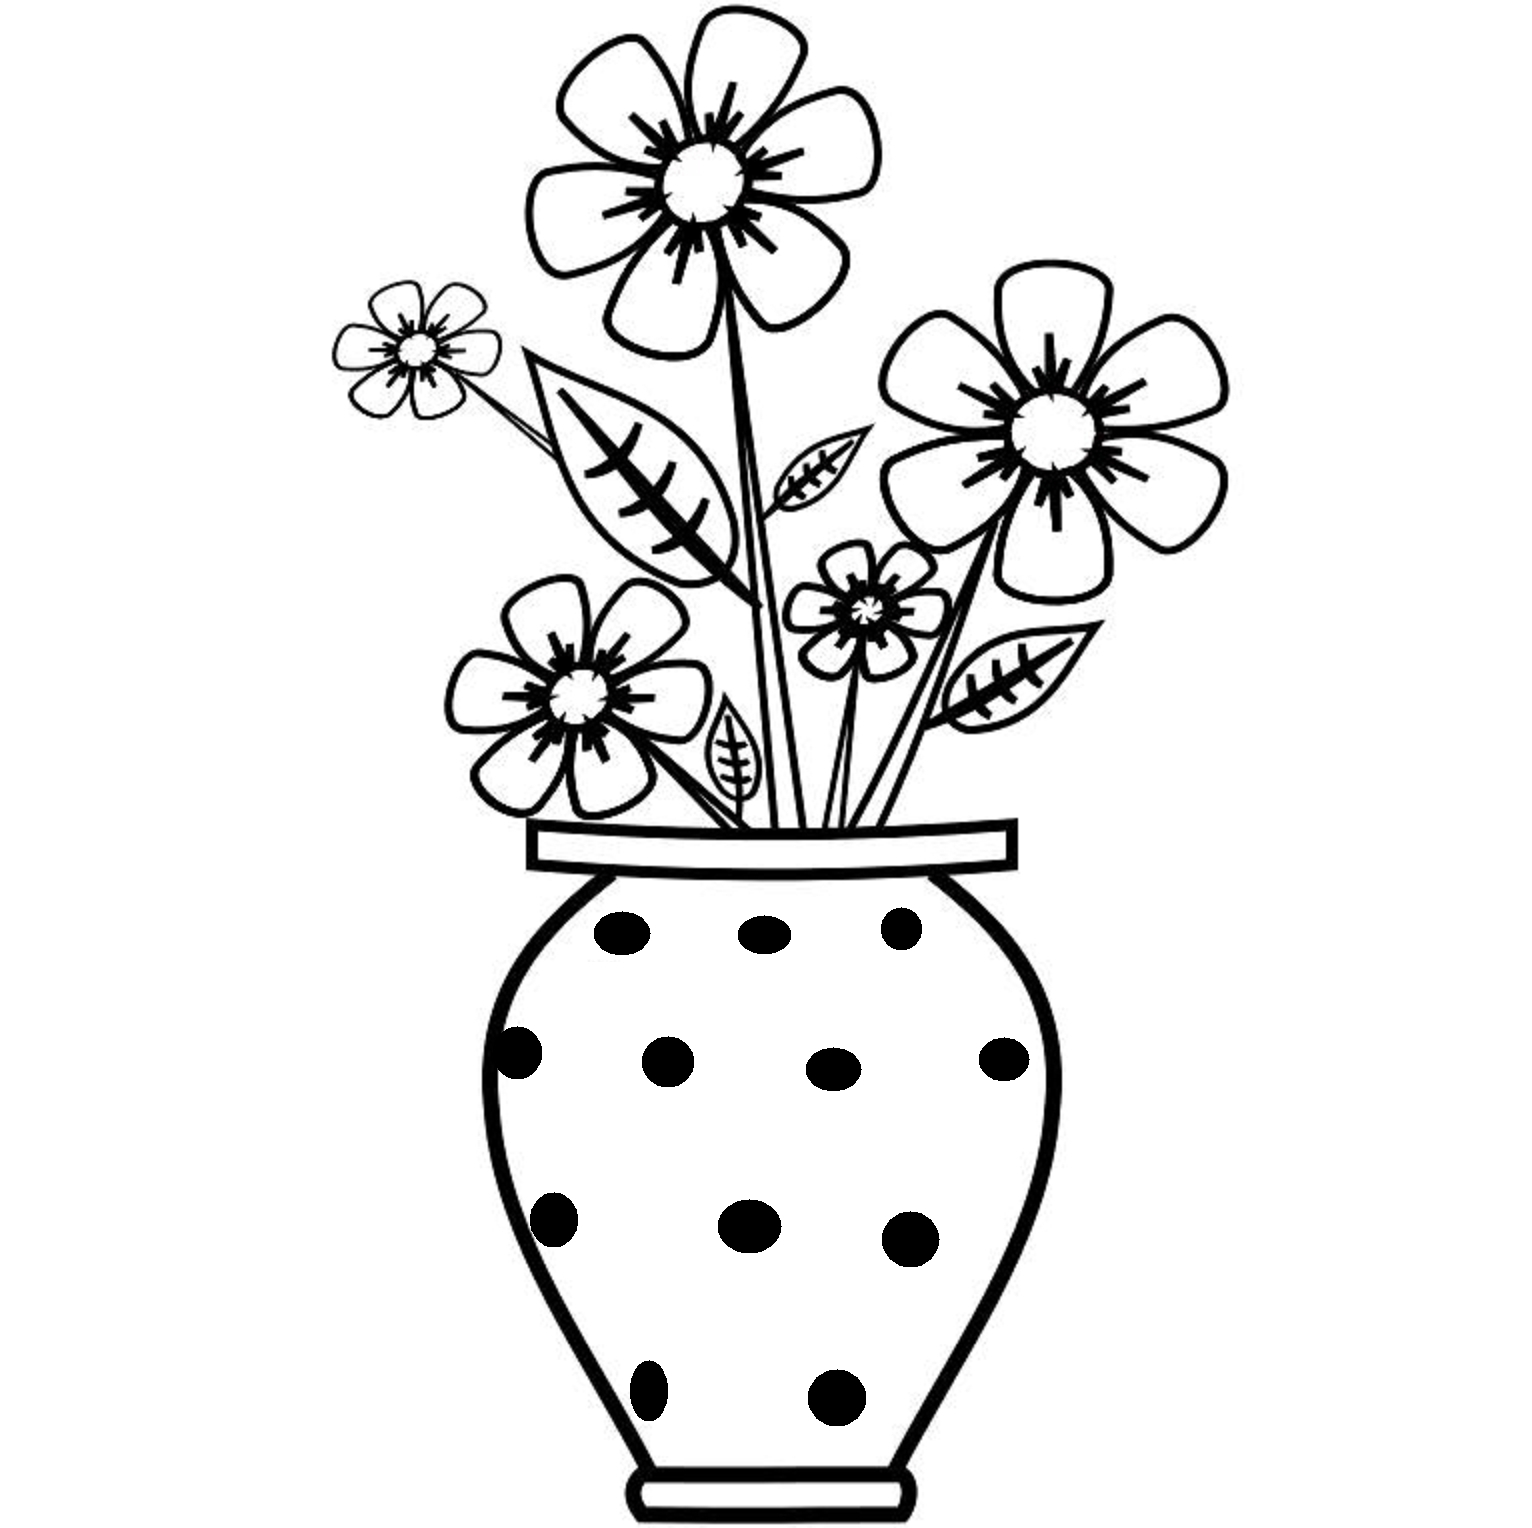 1532x1528 Images Of Flower Vase For Drawing How To Draw A Flower Vase